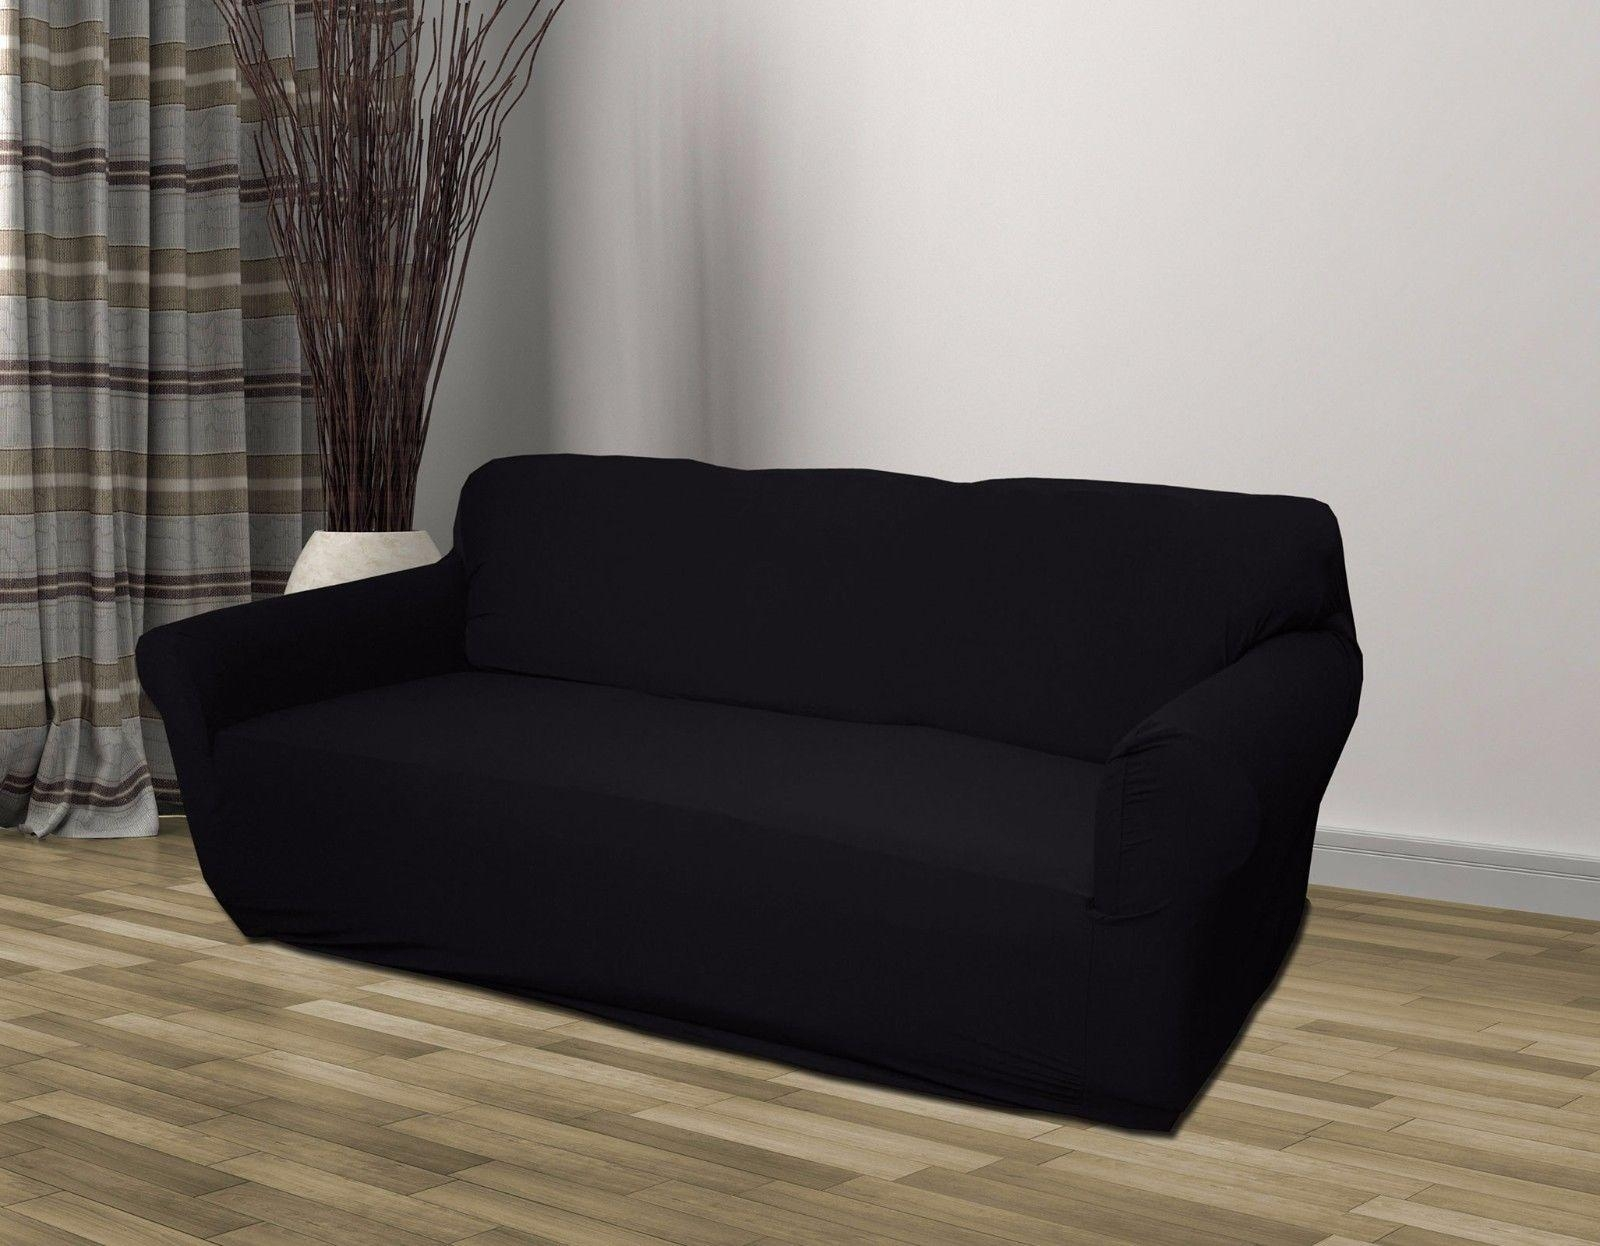 Black Jersey Sofa Stretch Slipcover, Couch Cover, Chair Loveseat Throughout Black Slipcovers For Sofas (View 2 of 20)